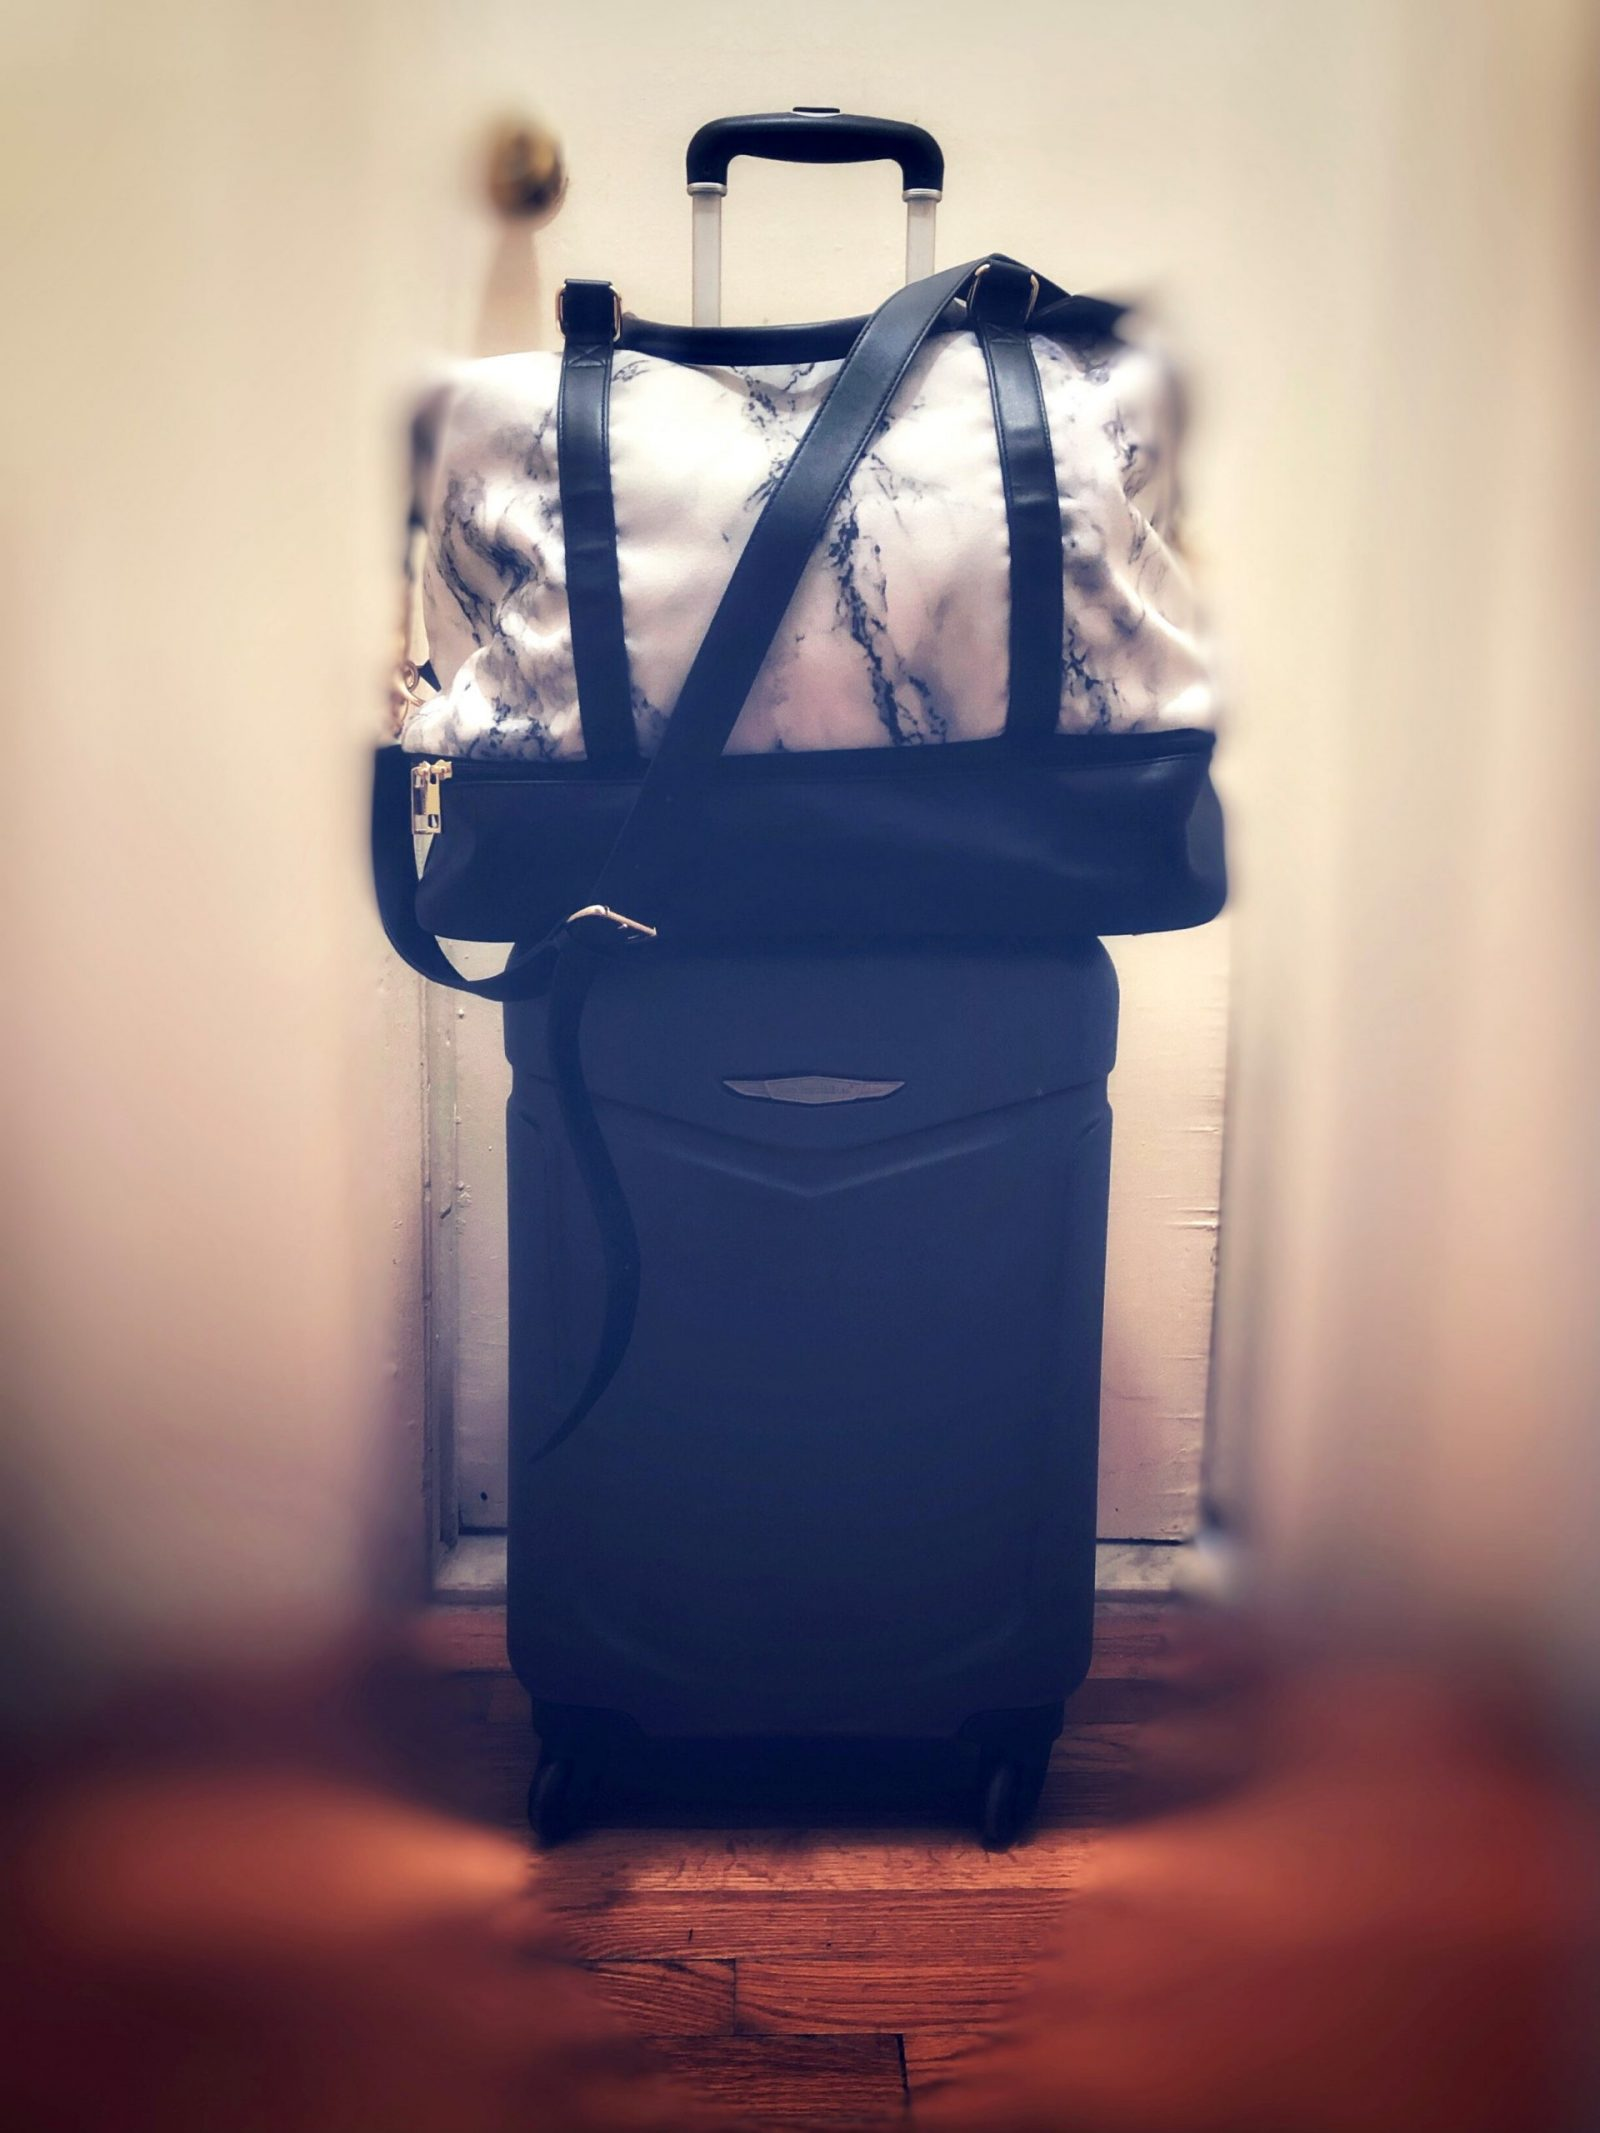 Tabitha's Luggage and Carry-On